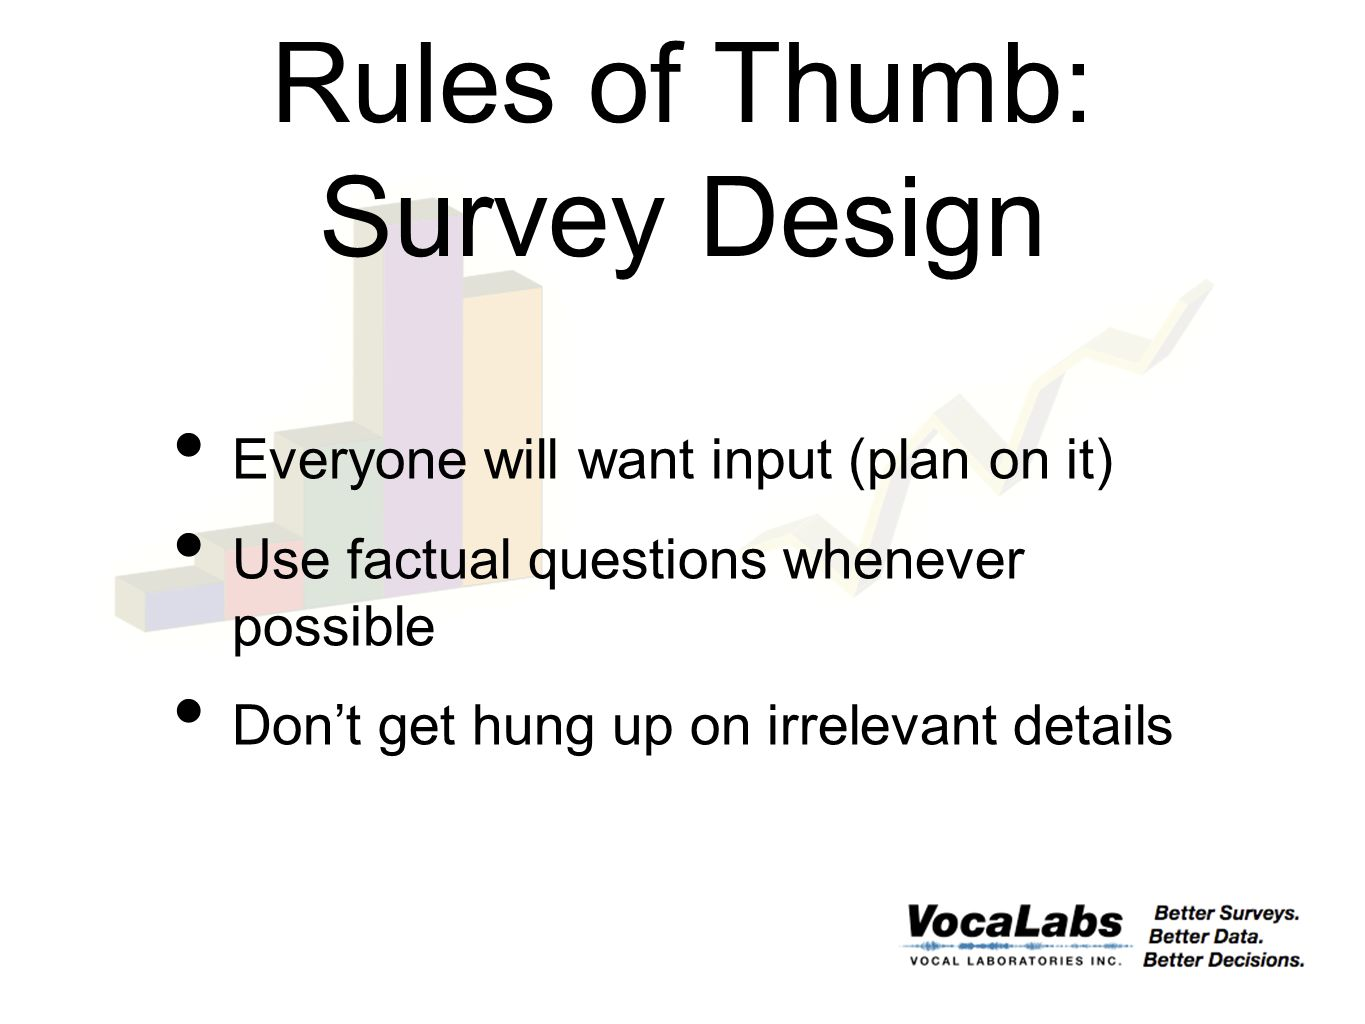 Rules of Thumb: Survey Design Everyone will want input (plan on it) Use factual questions whenever possible Don't get hung up on irrelevant details